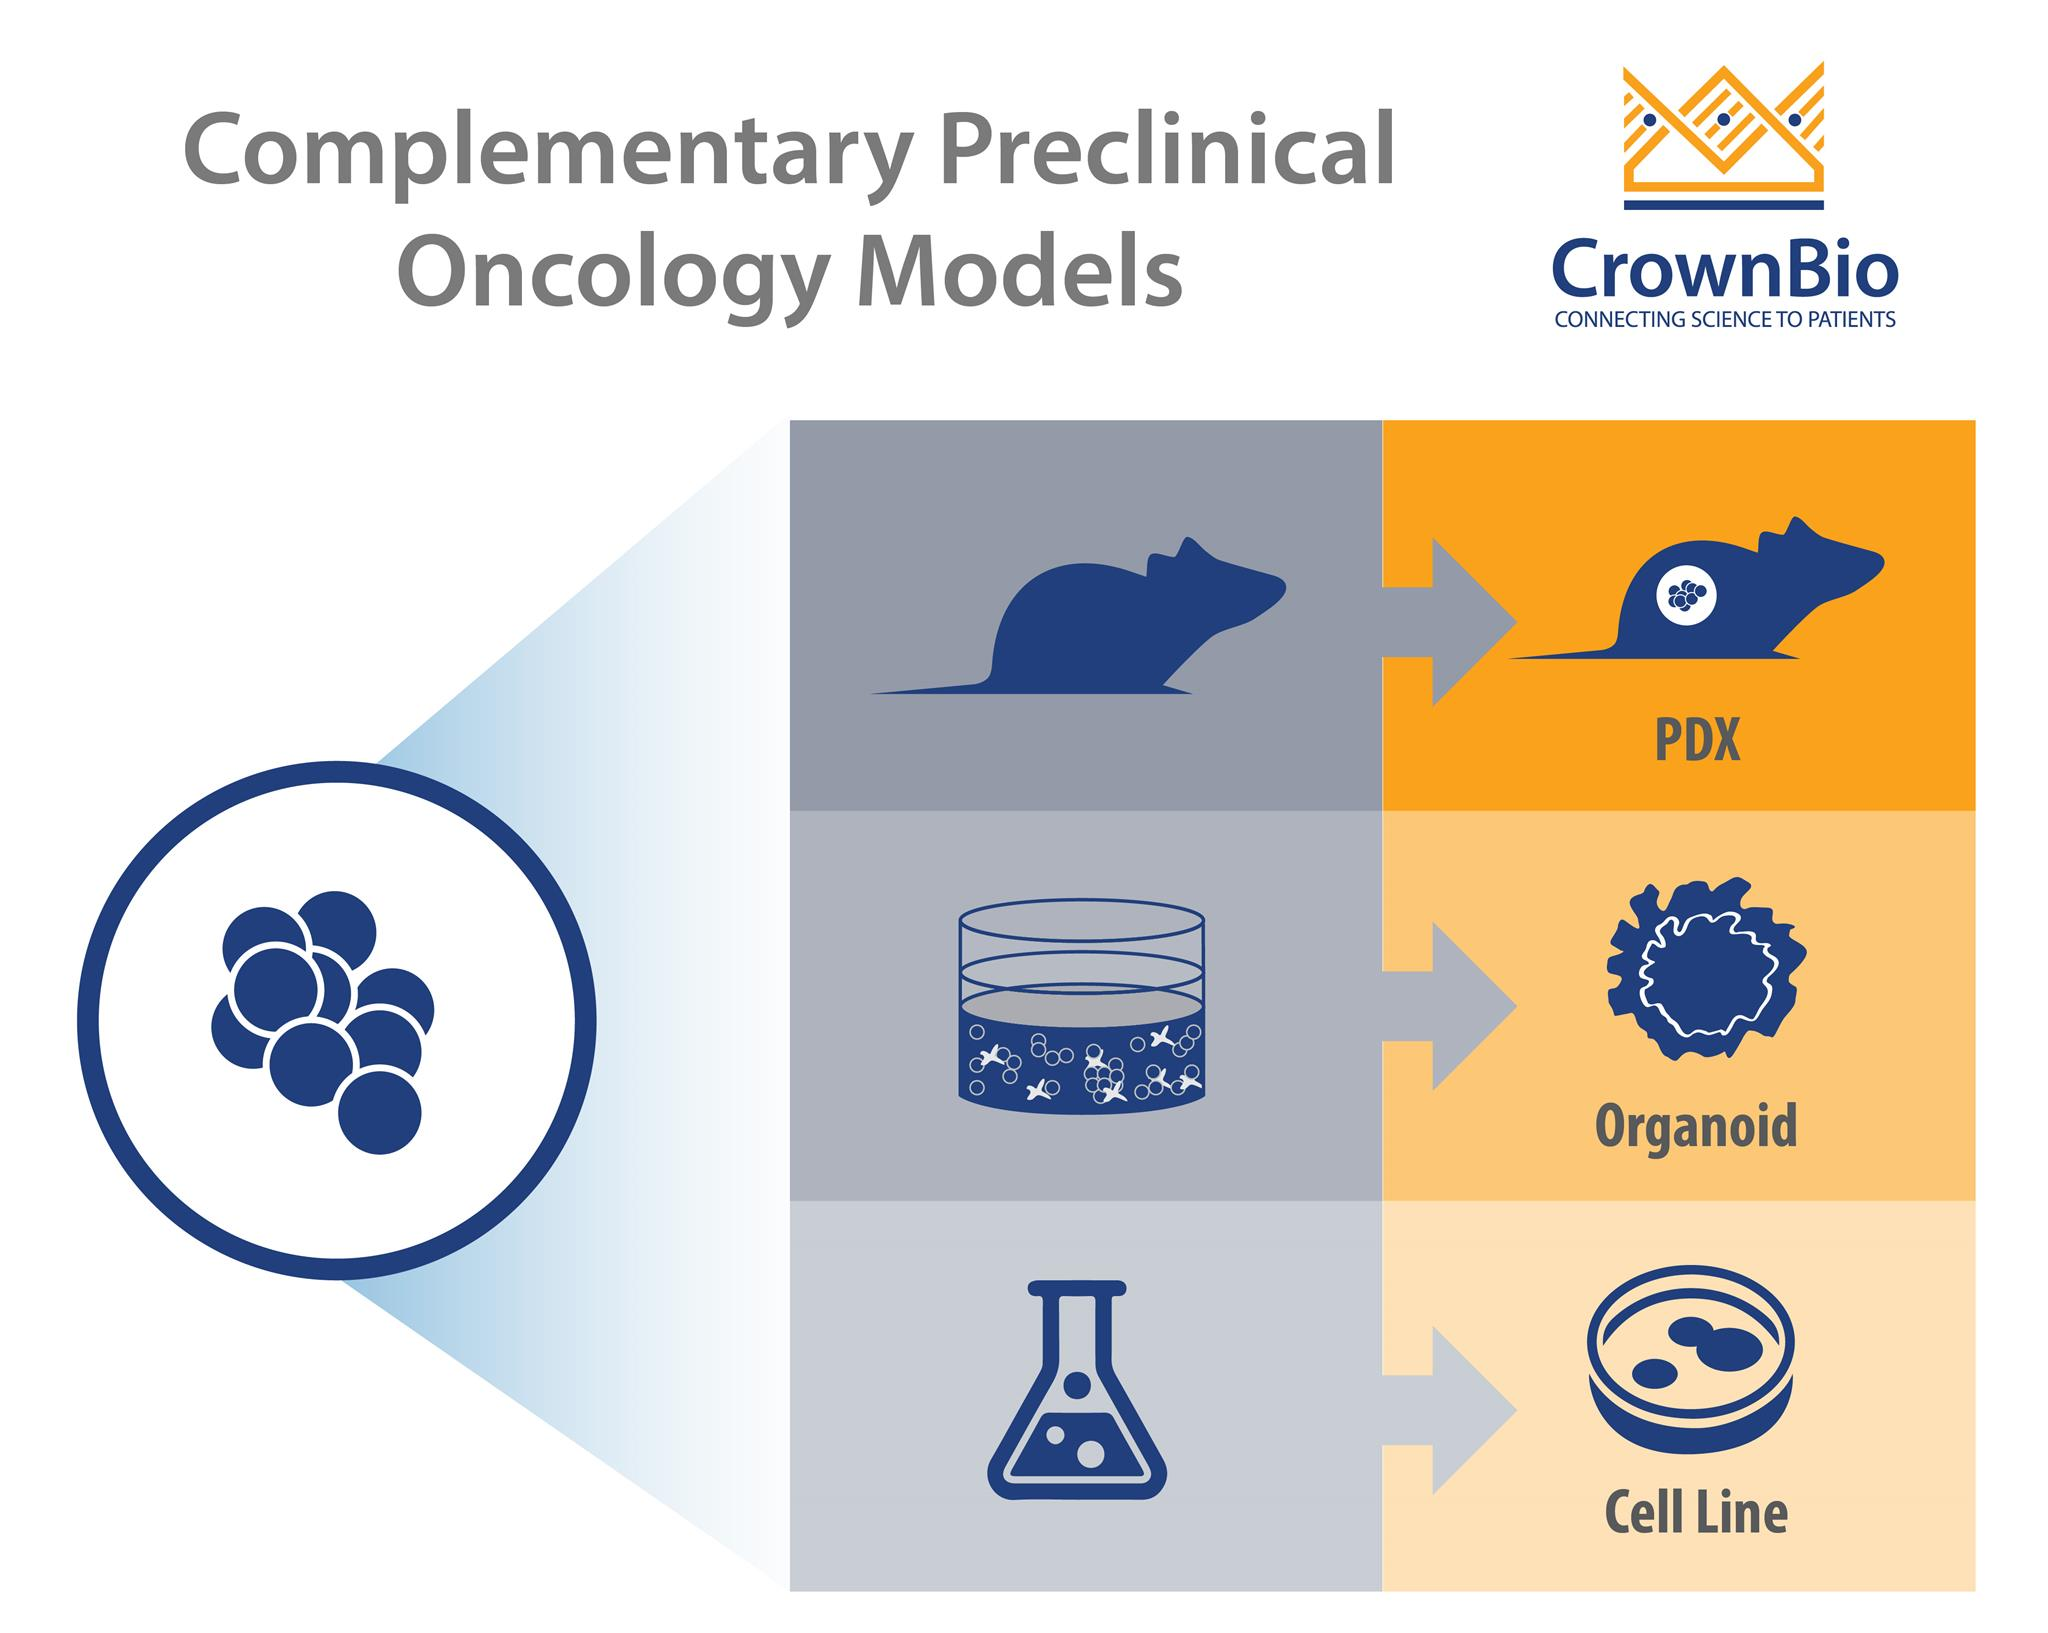 Where Do Organoids Fit in Preclinical Cancer Modeling?